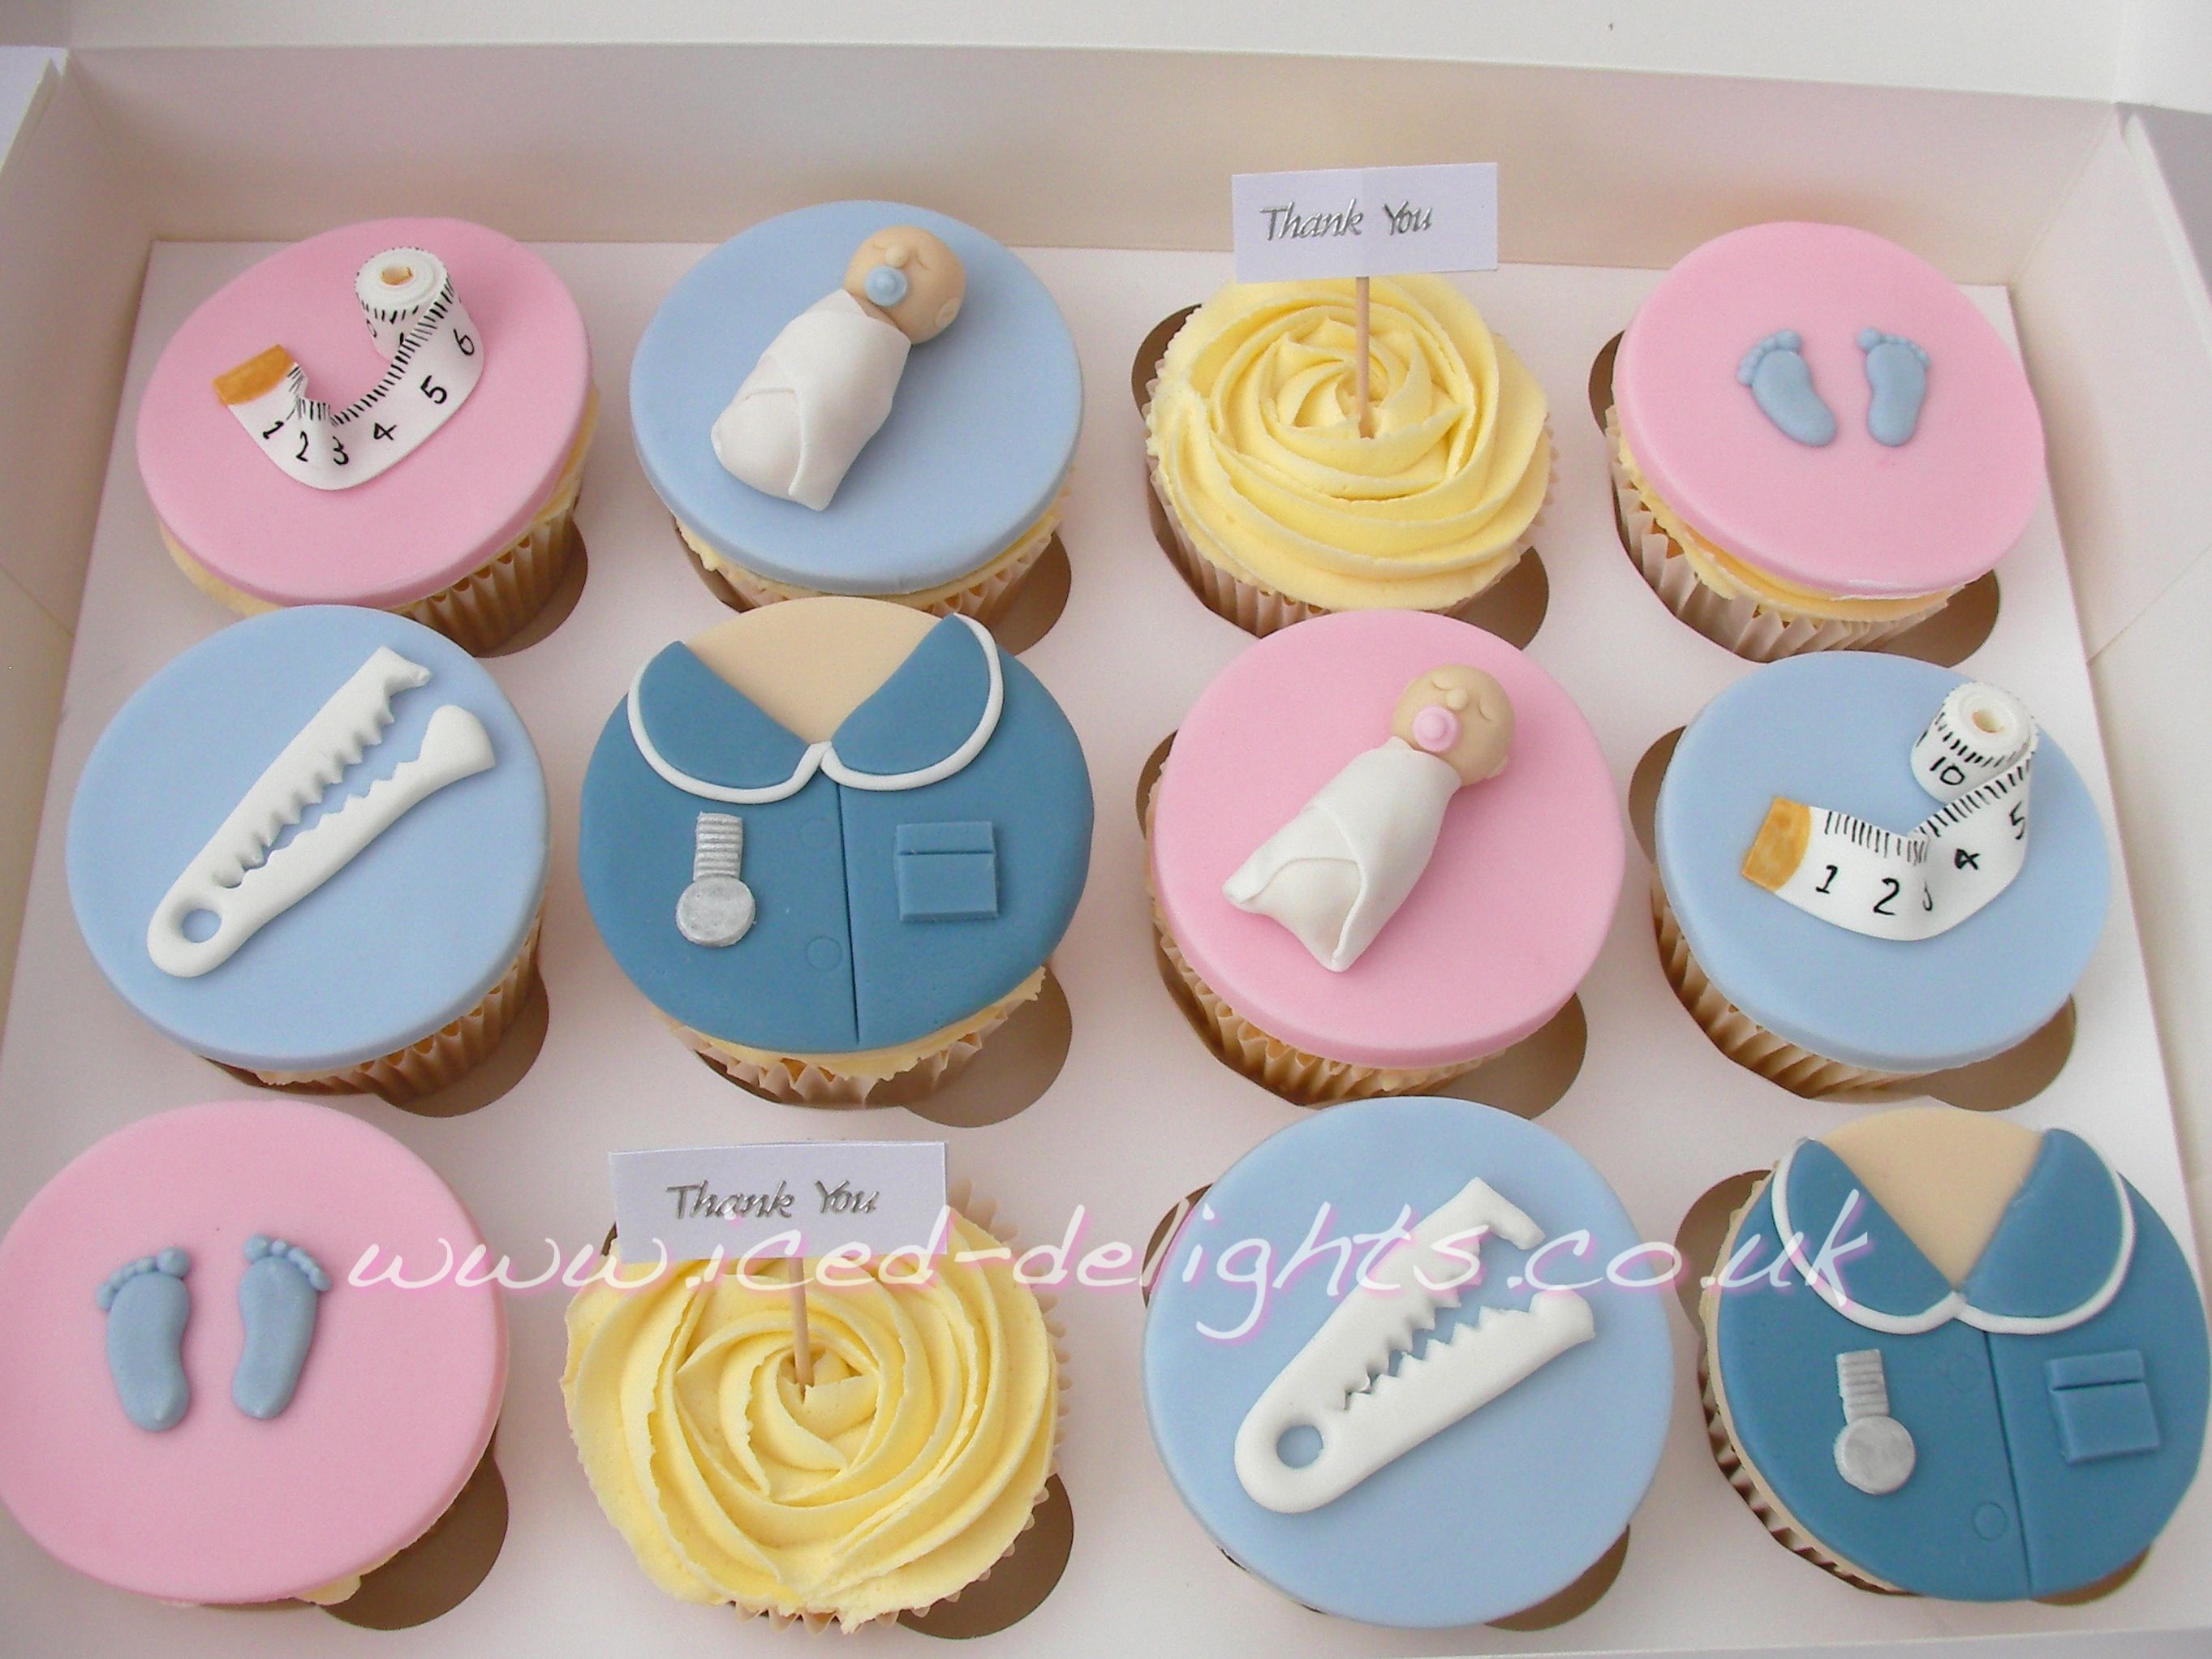 Iced Delights Cakes Cheshire